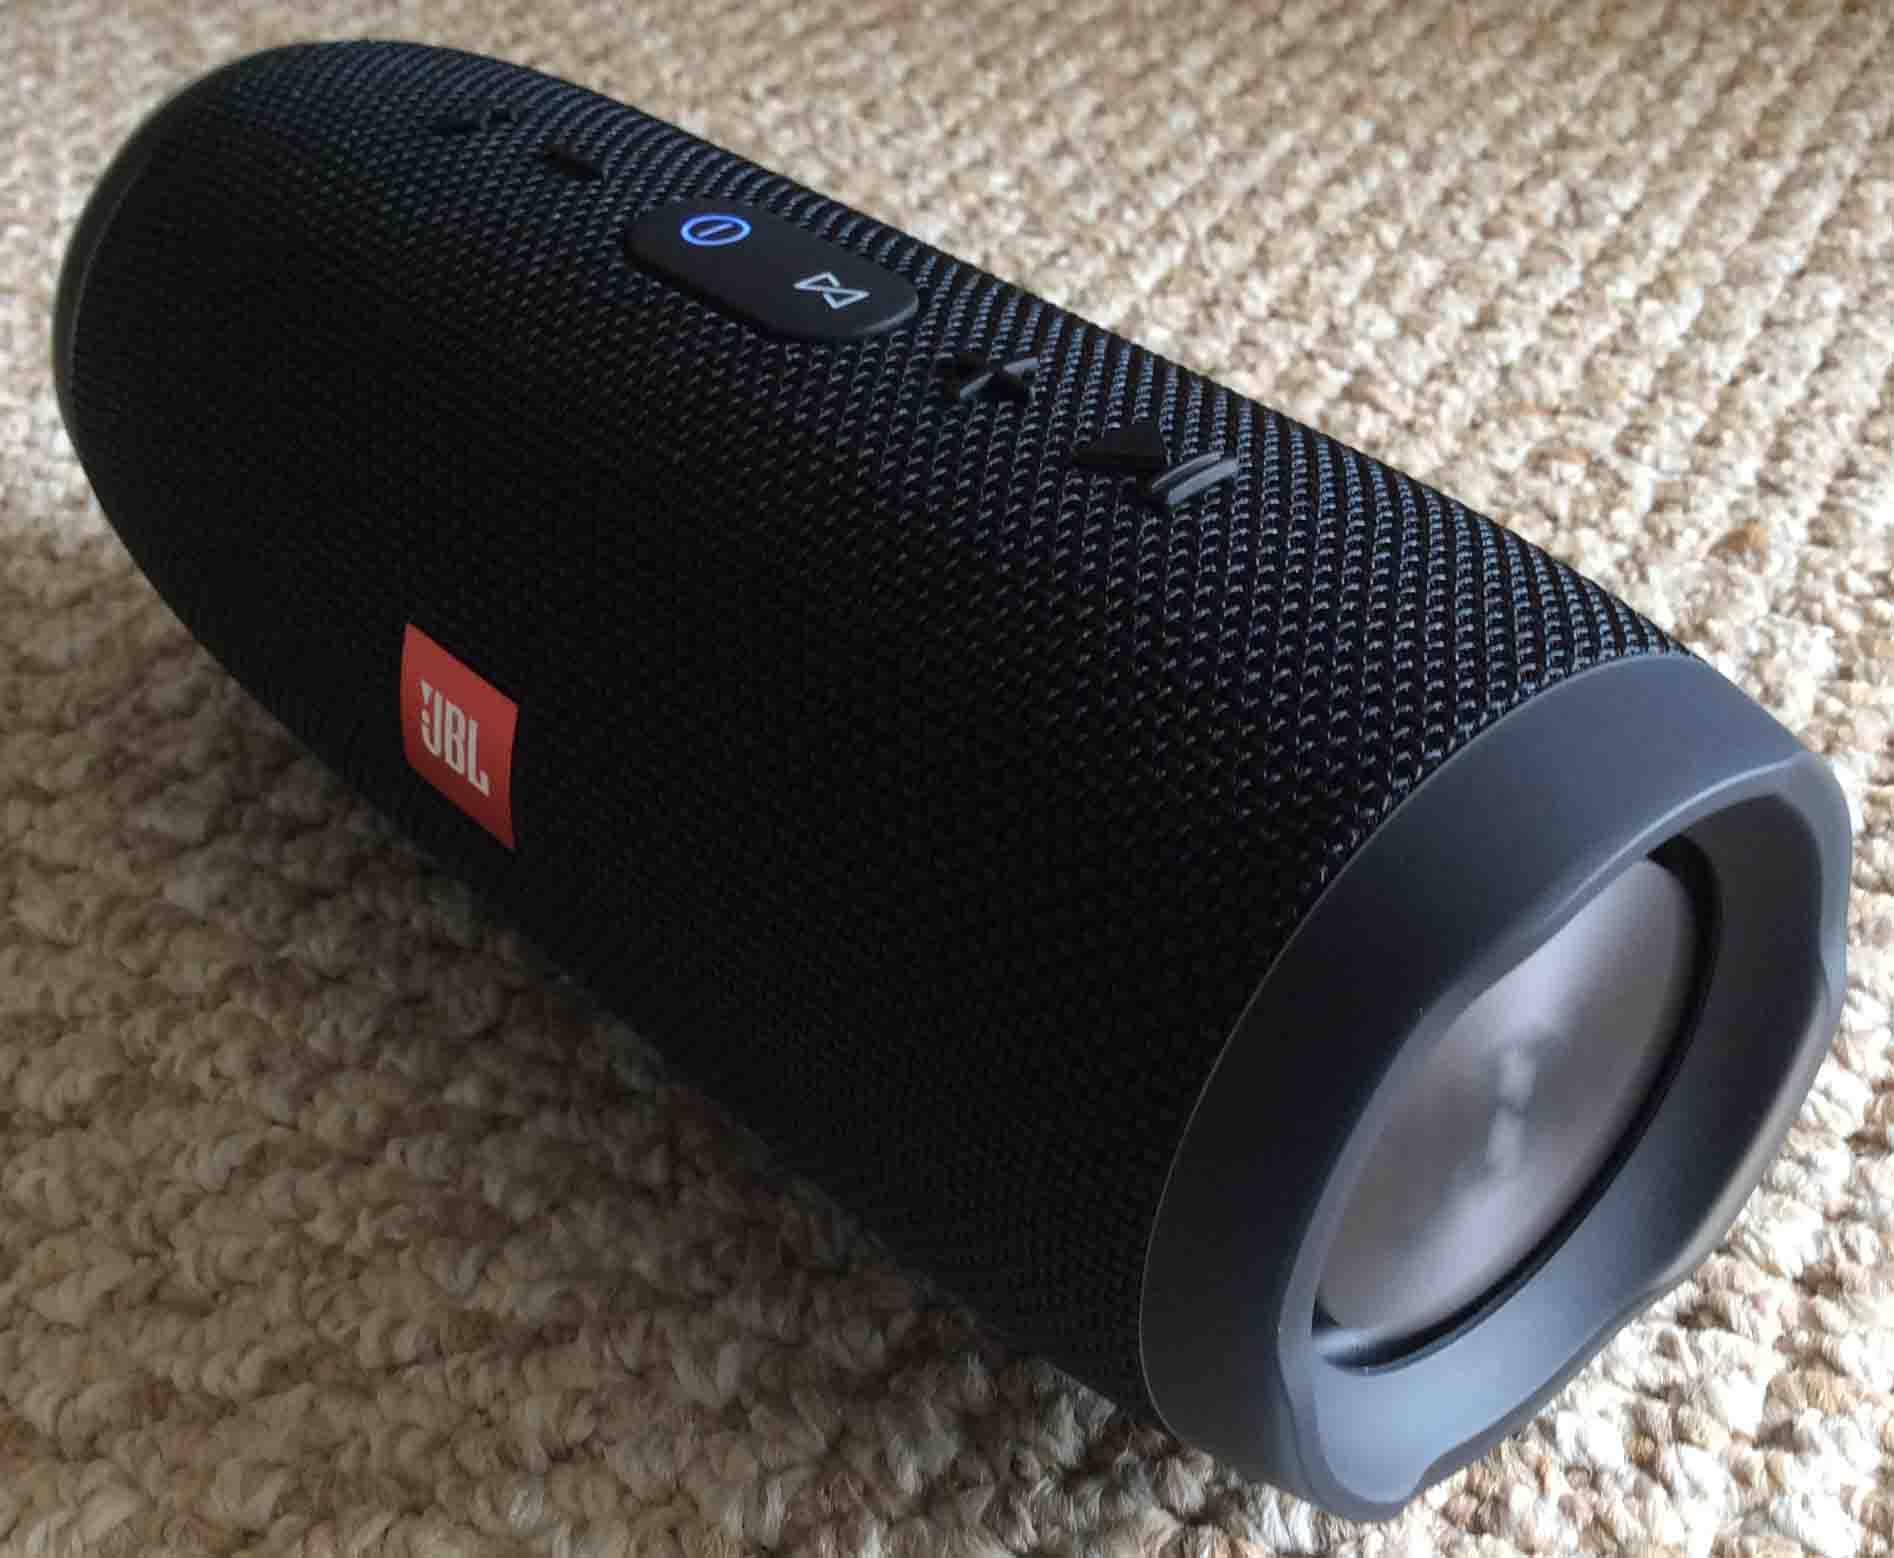 Jbl Charge 3 Waterproof Wireless Bluetooth Speaker Picture Gallery Of The